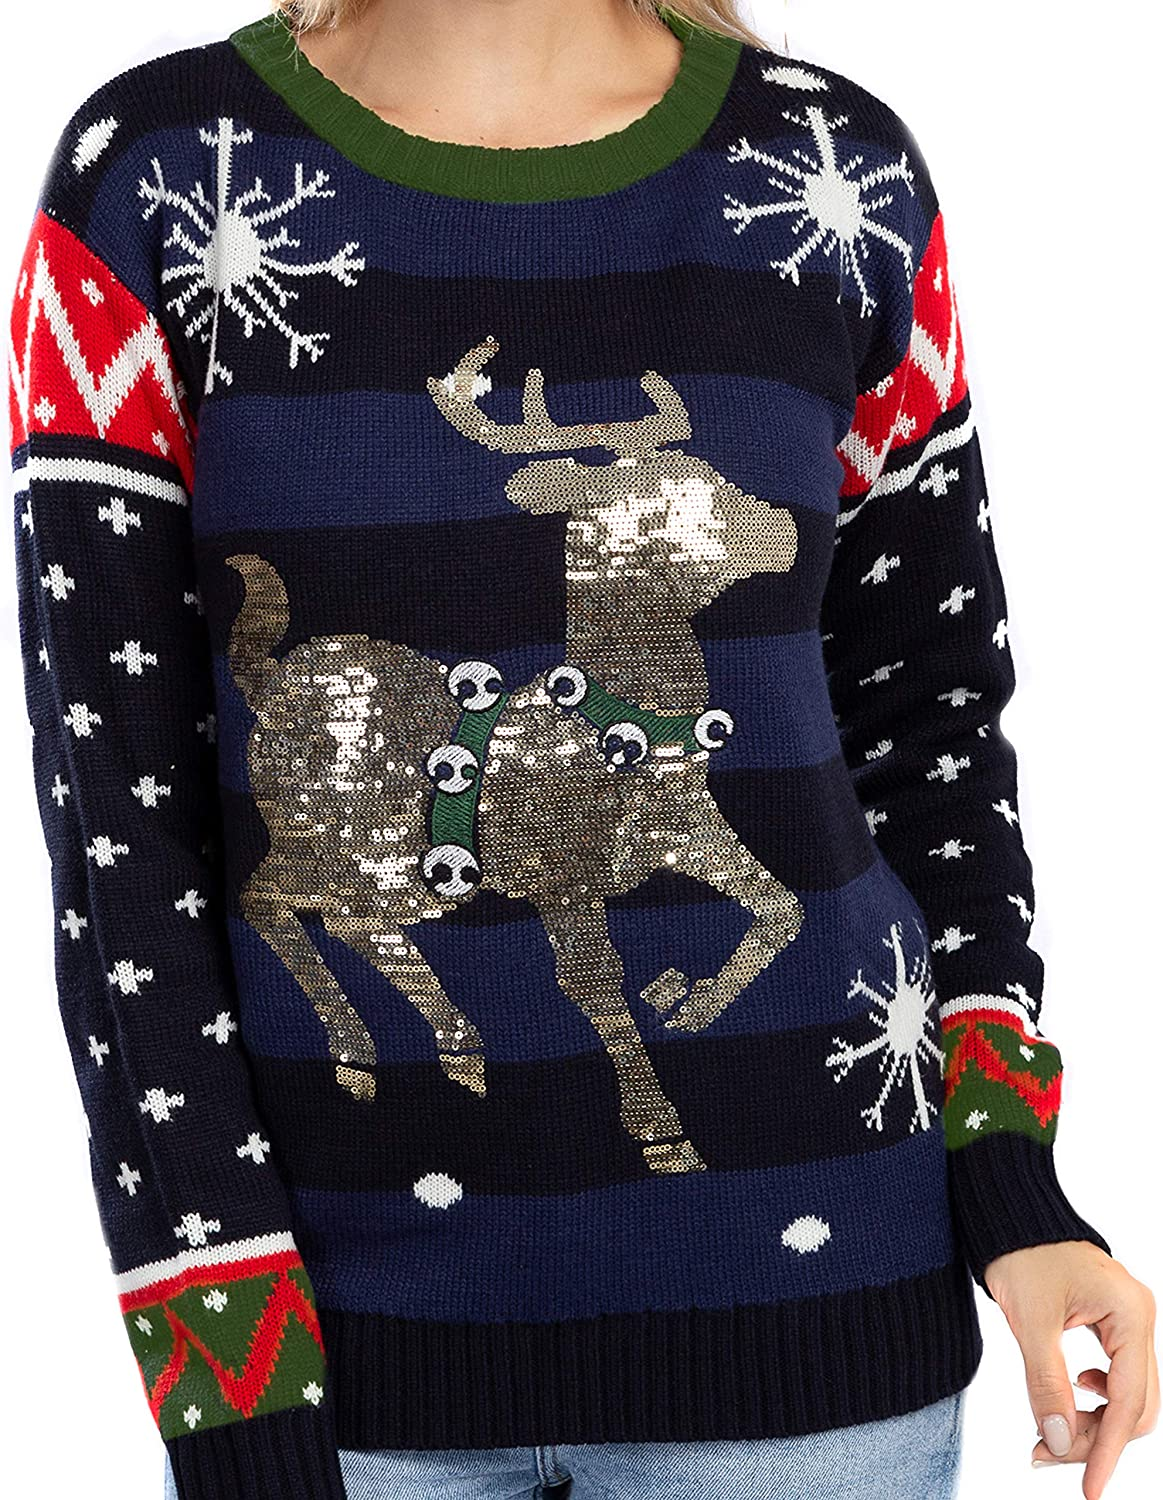 JOYIN Women's Cute Shining Christmas Reindeer Ugly Sweater Pullover Knitted Tunic for Holiday or Birthday Gift